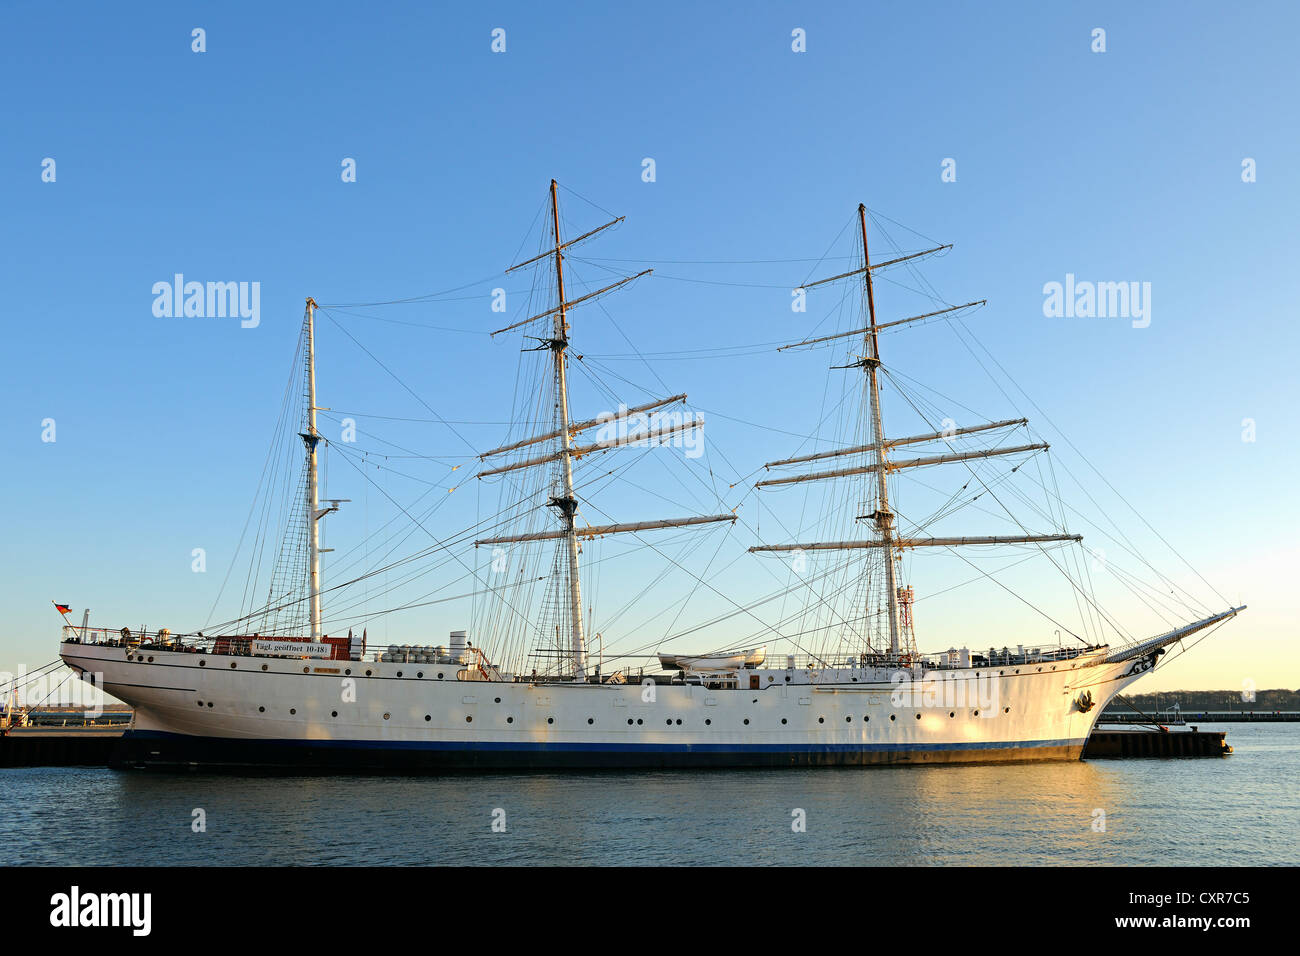 Tall ship Gorch Fock I in the morning light, old port of Stralsund, Mecklenburg-Western Pomerania, Germany, Europe, - Stock Image